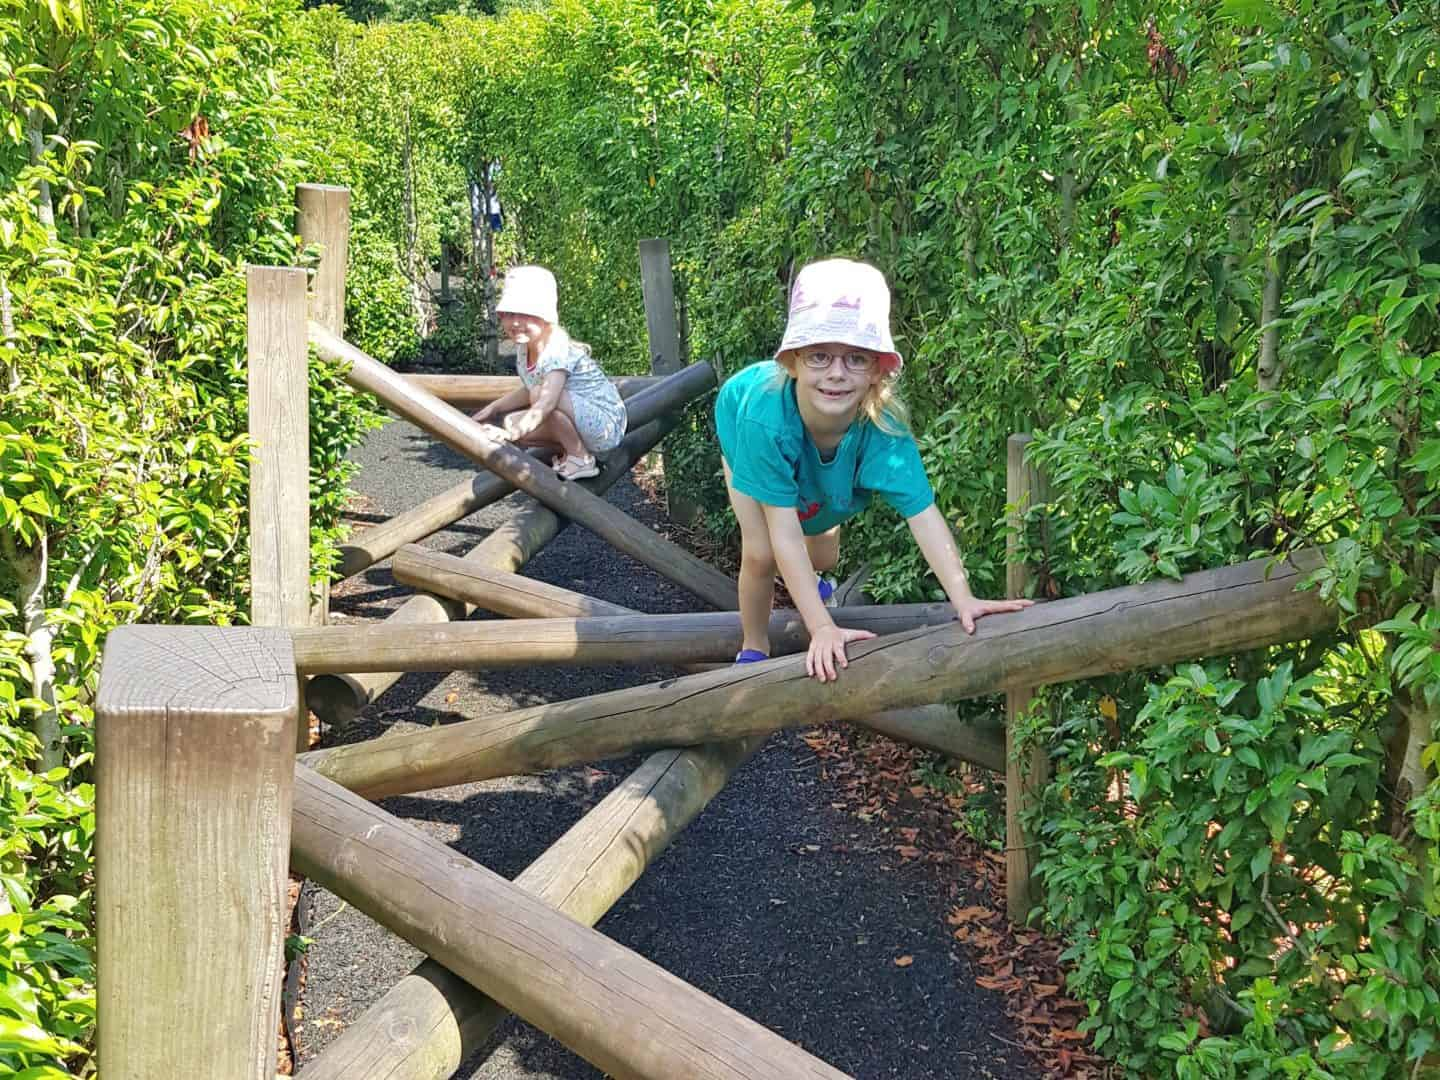 Children climbing on wood in Horrible Histories Maze at Warwick Castle